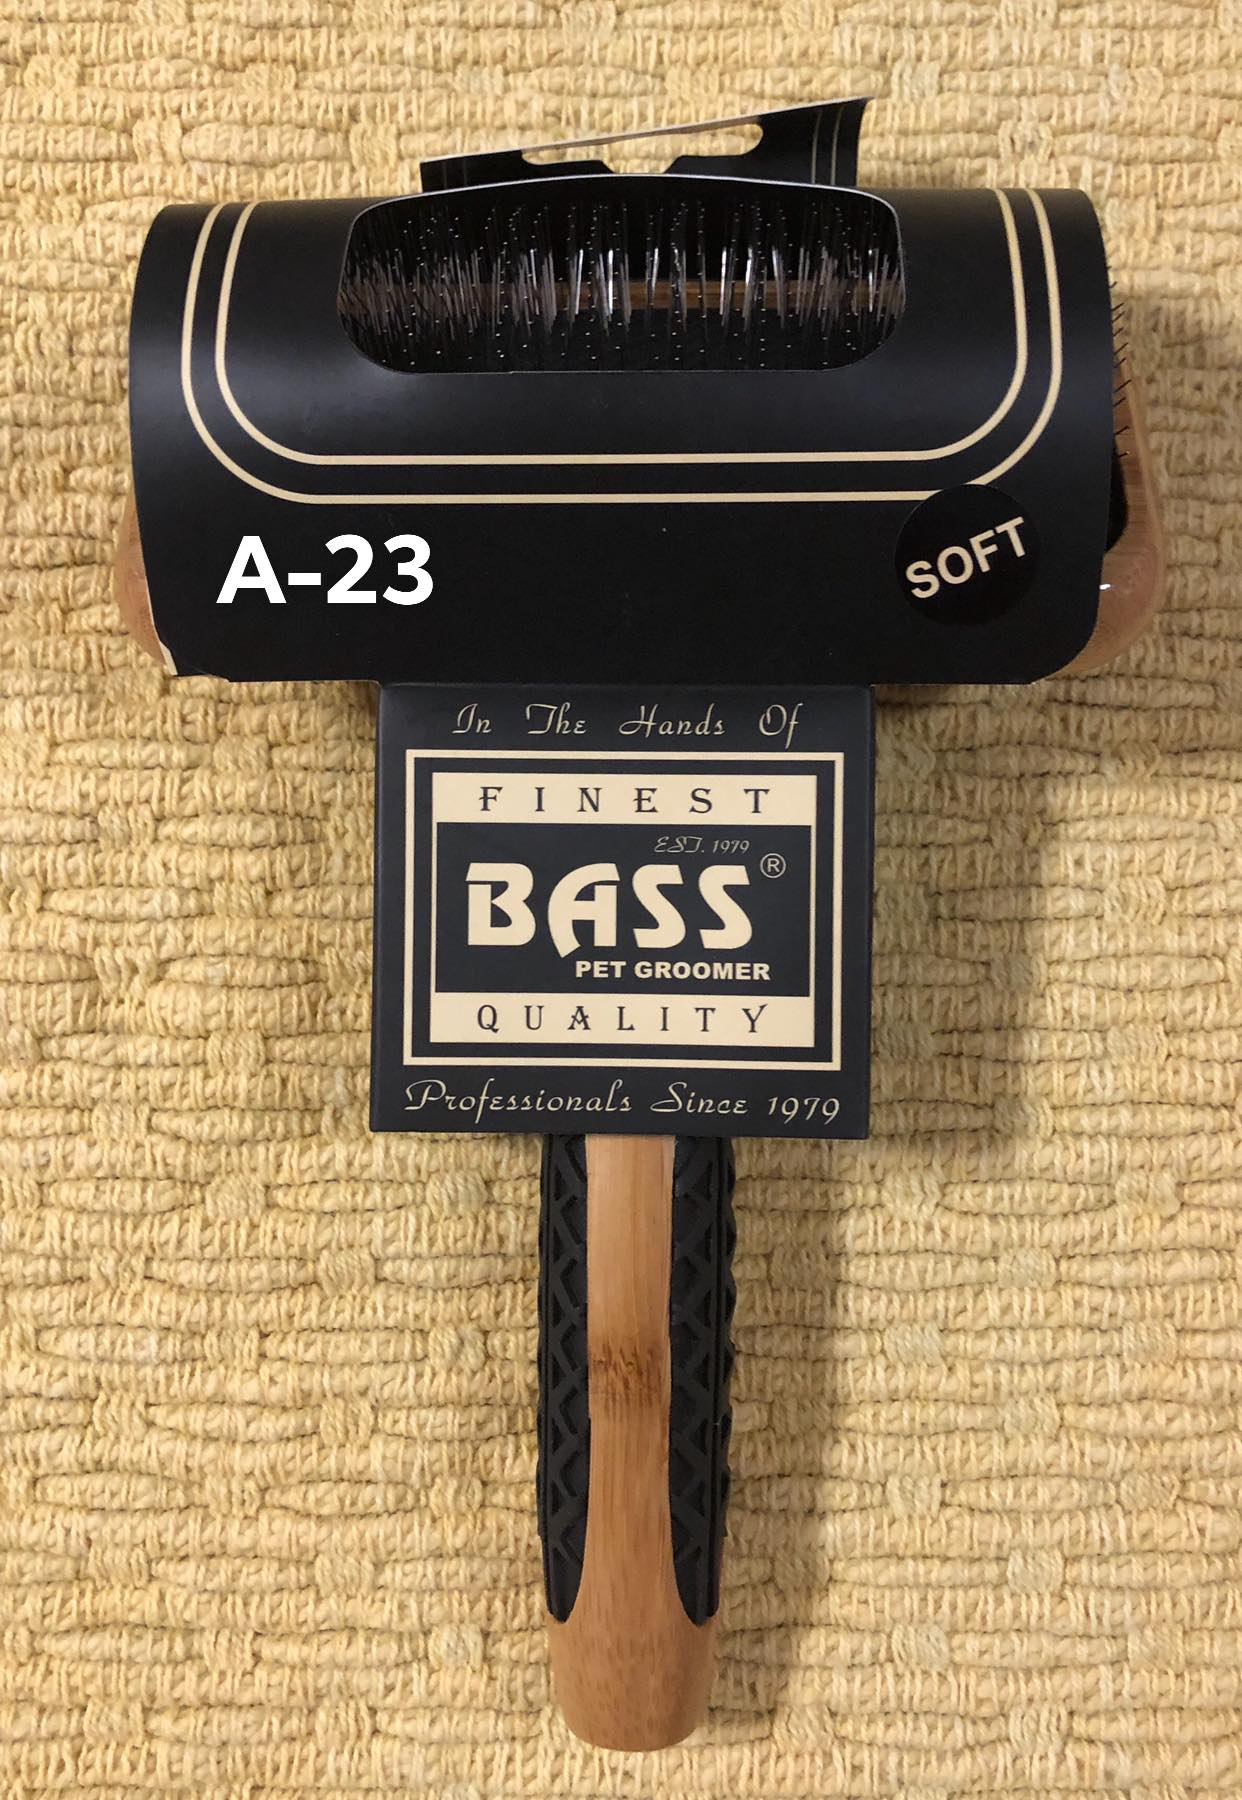 Bass A-23 Soft wet/dry Bamboo Slicker